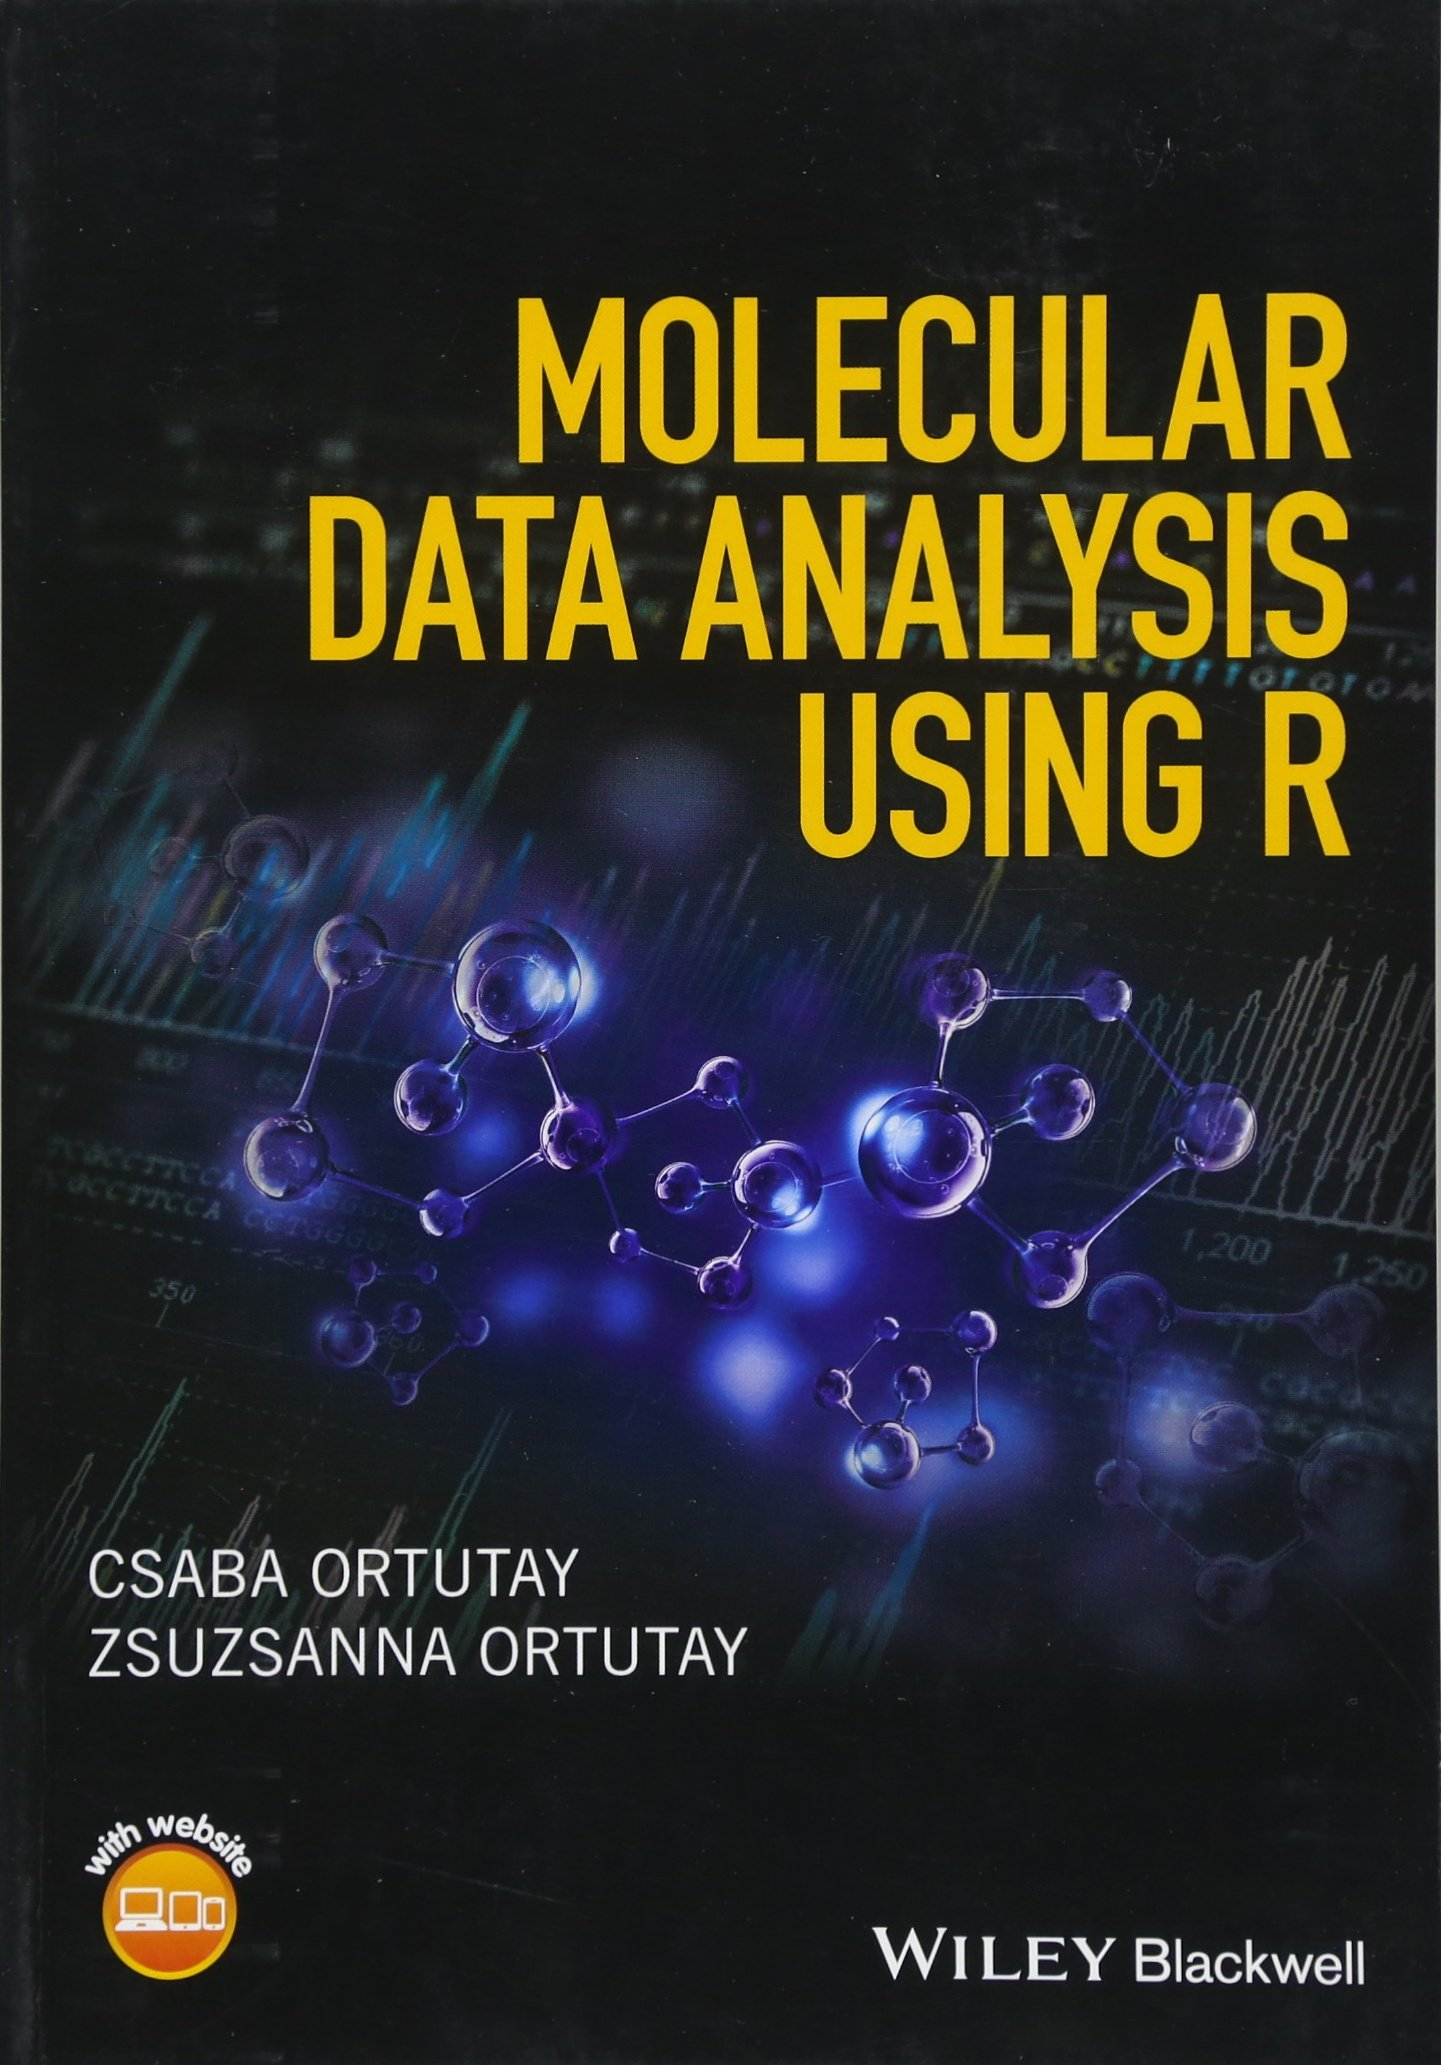 Molecular Data Analysis Using R by Wiley-Blackwell